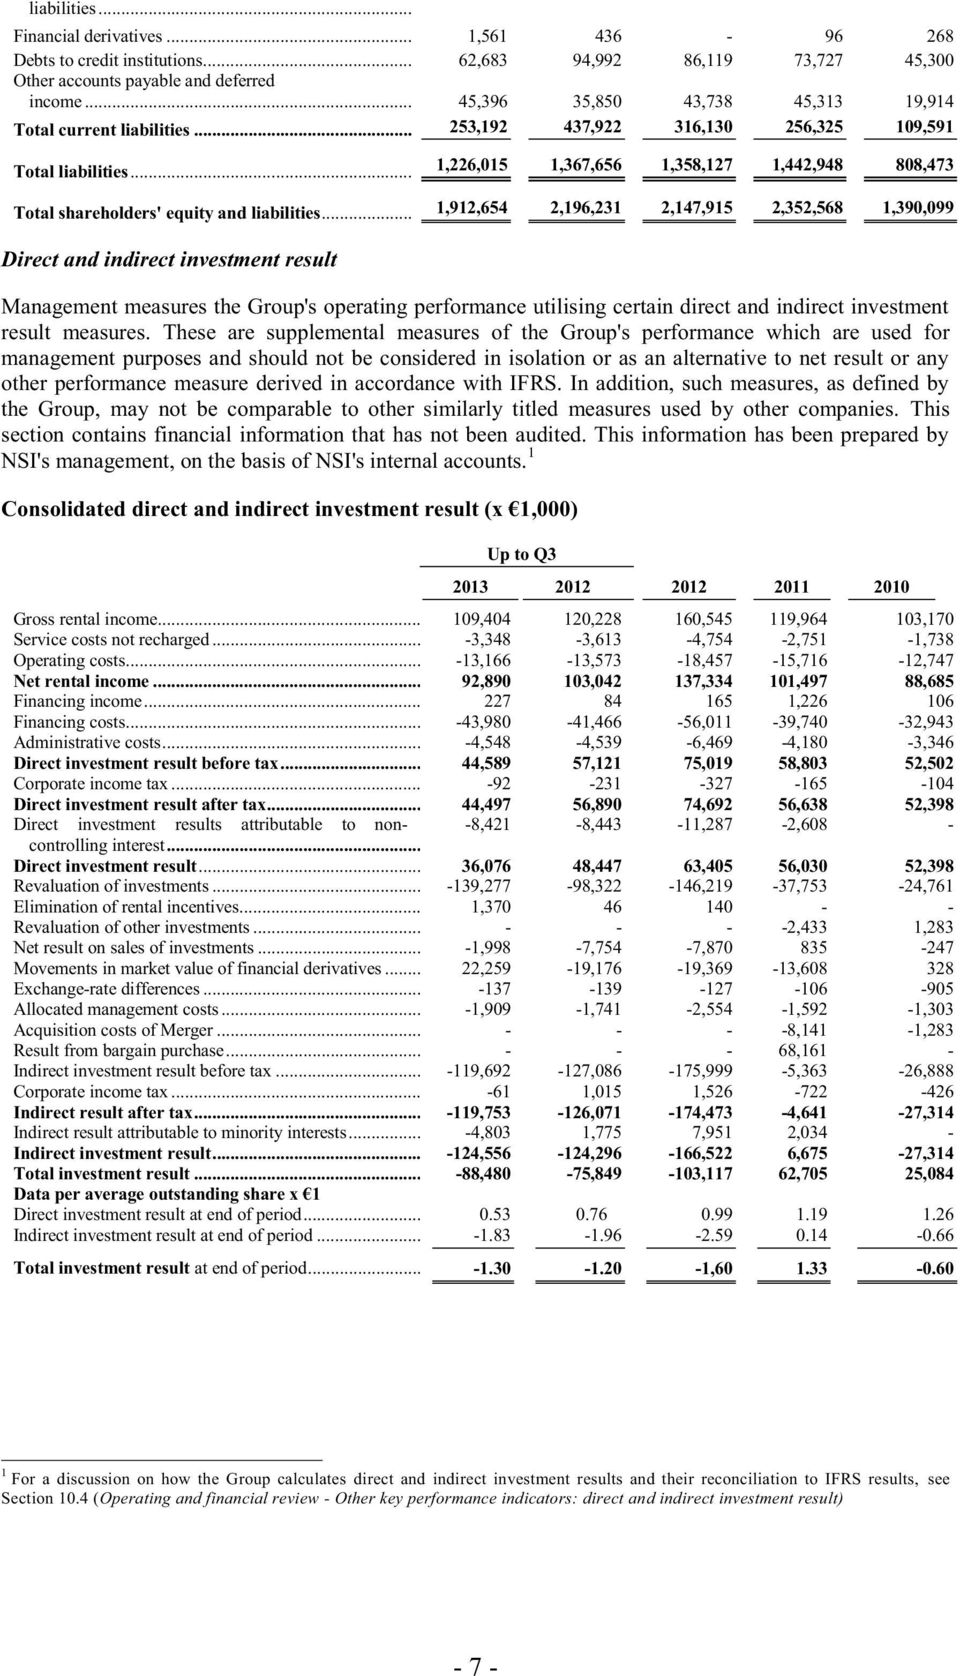 .. 1,226,015 1,367,656 1,358,127 1,442,948 808,473 Total shareholders' equity and liabilities.